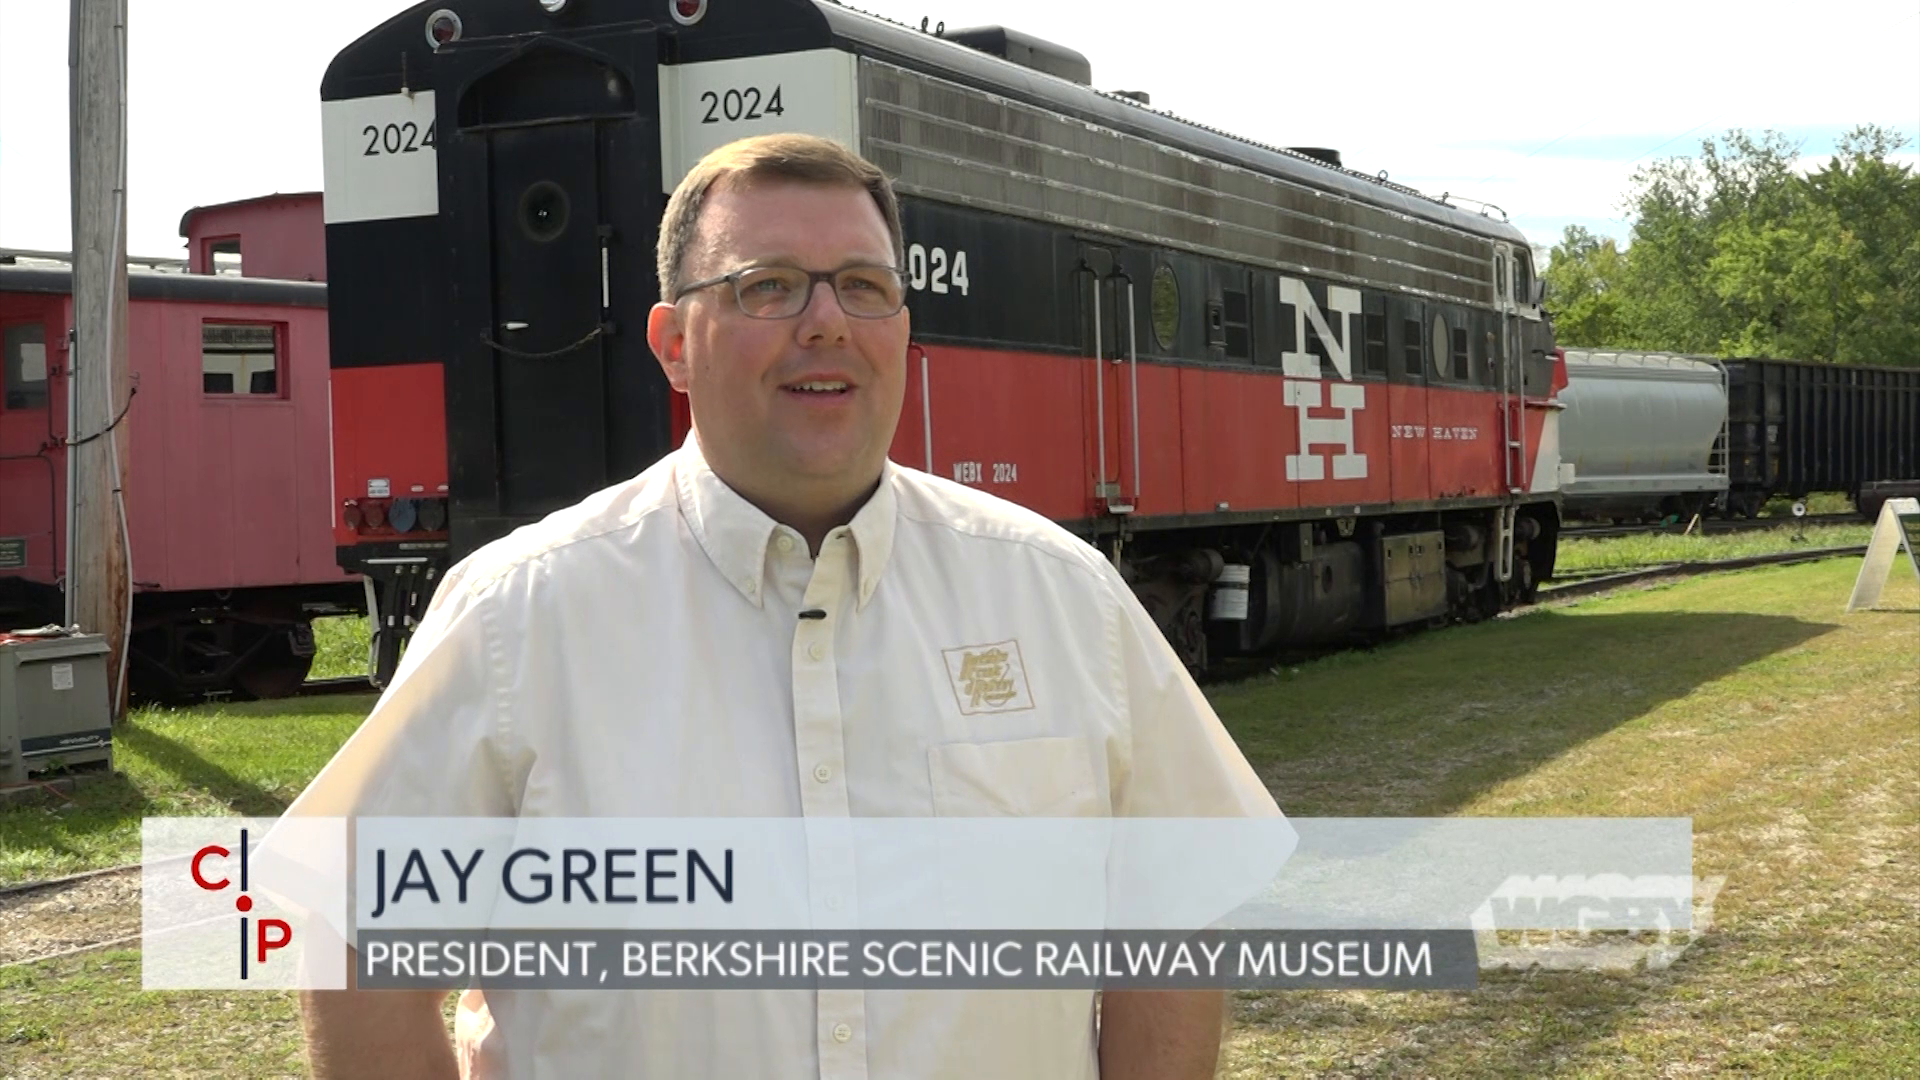 The Berkshire Scenic Railway Museum keeps the memory of the former rail line alive through exhibits and vintage train rides.